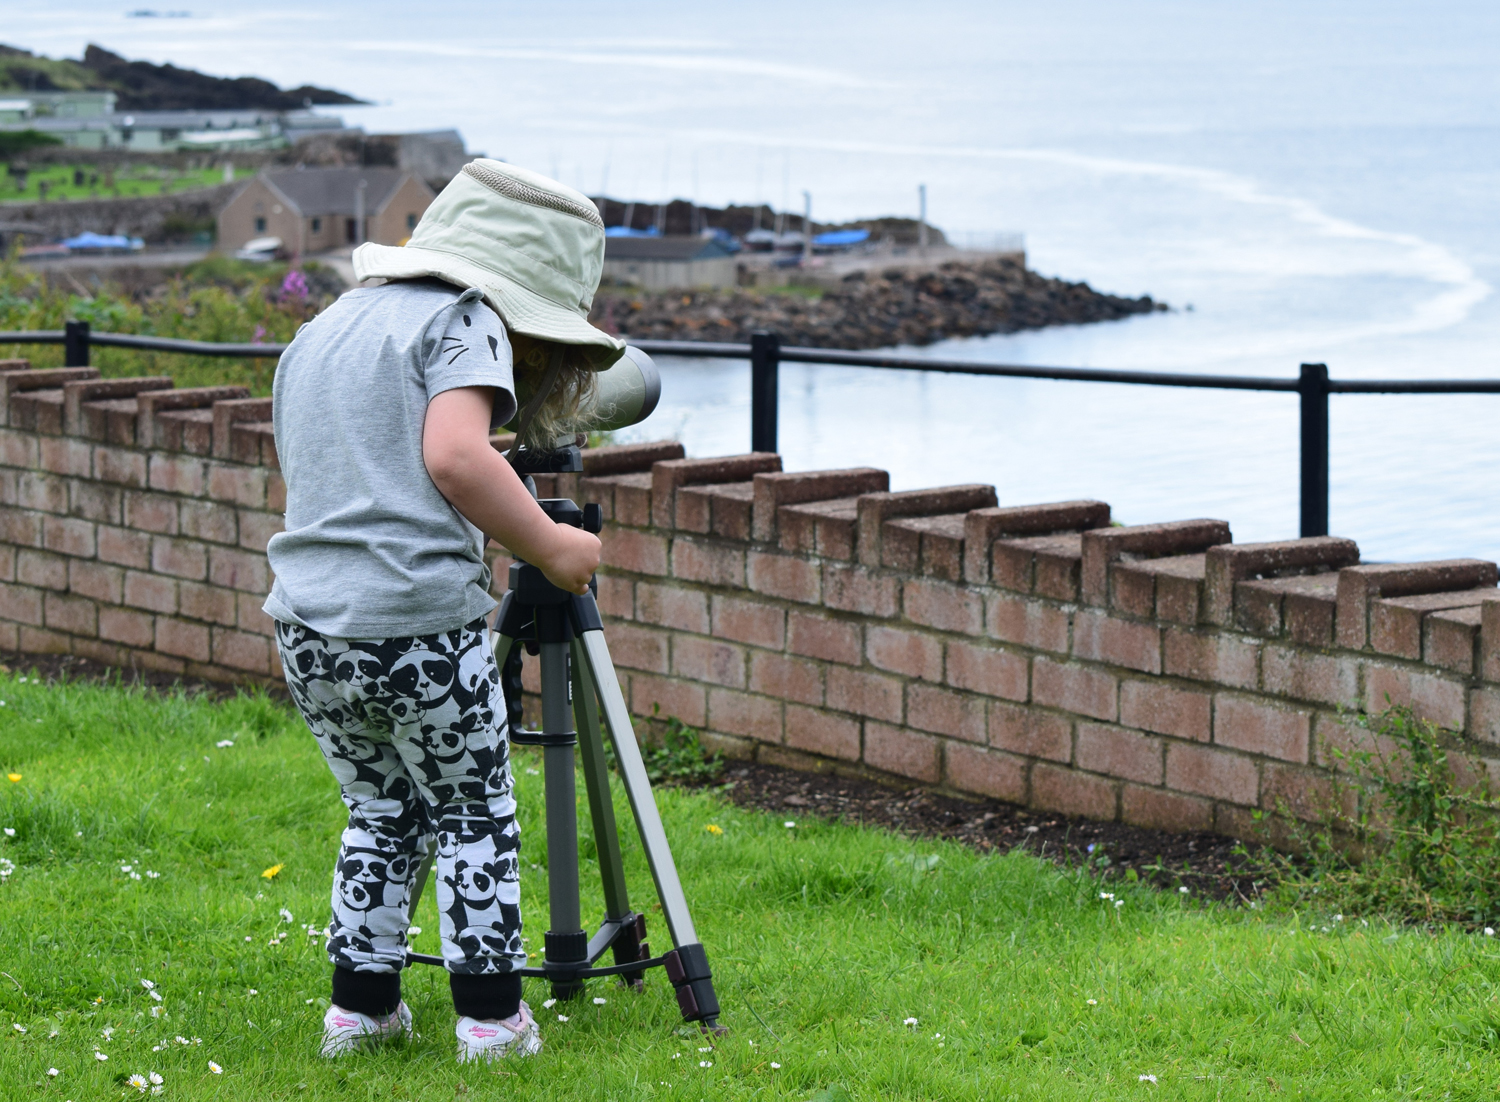 A young whale spotter looking out for whales and dolphins in Kinghorn, Scotland, during NWDW last year. Credit: Ronnie Mackie/Sea Watch Foundation.